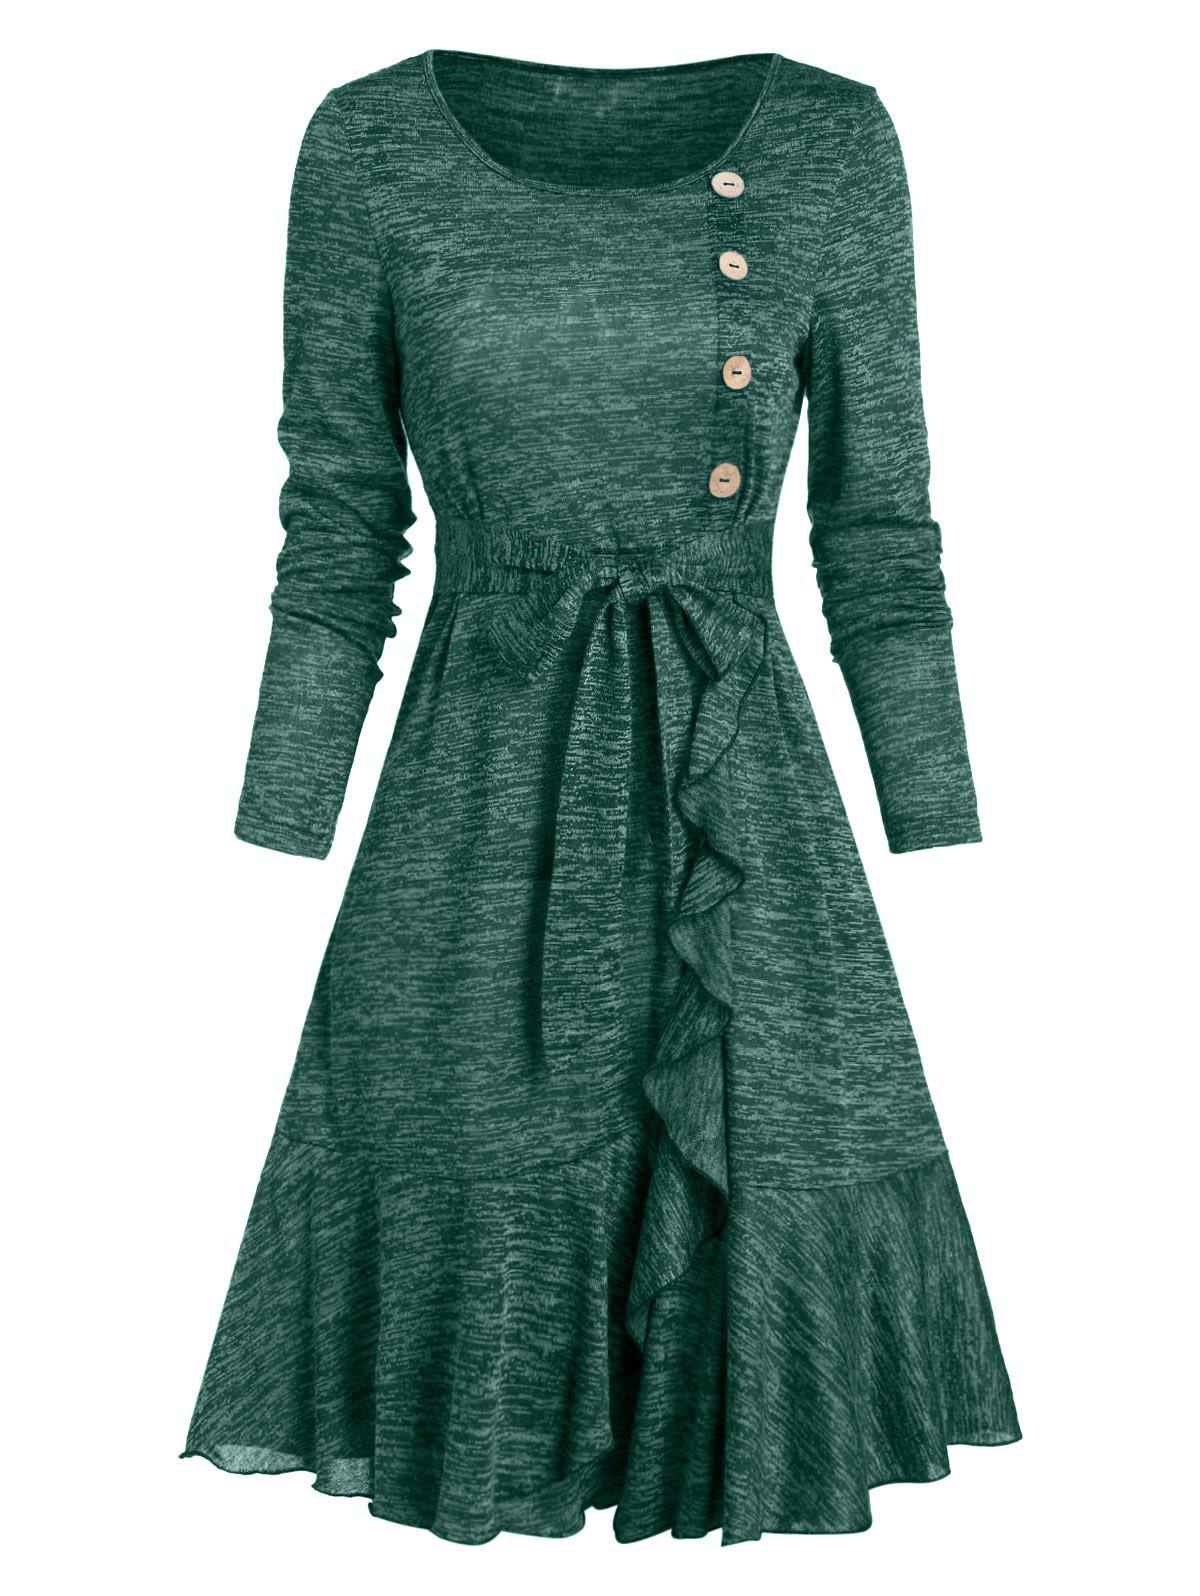 Button Ruffled Heather Knit A Line Dress - DARK GREEN 2XL